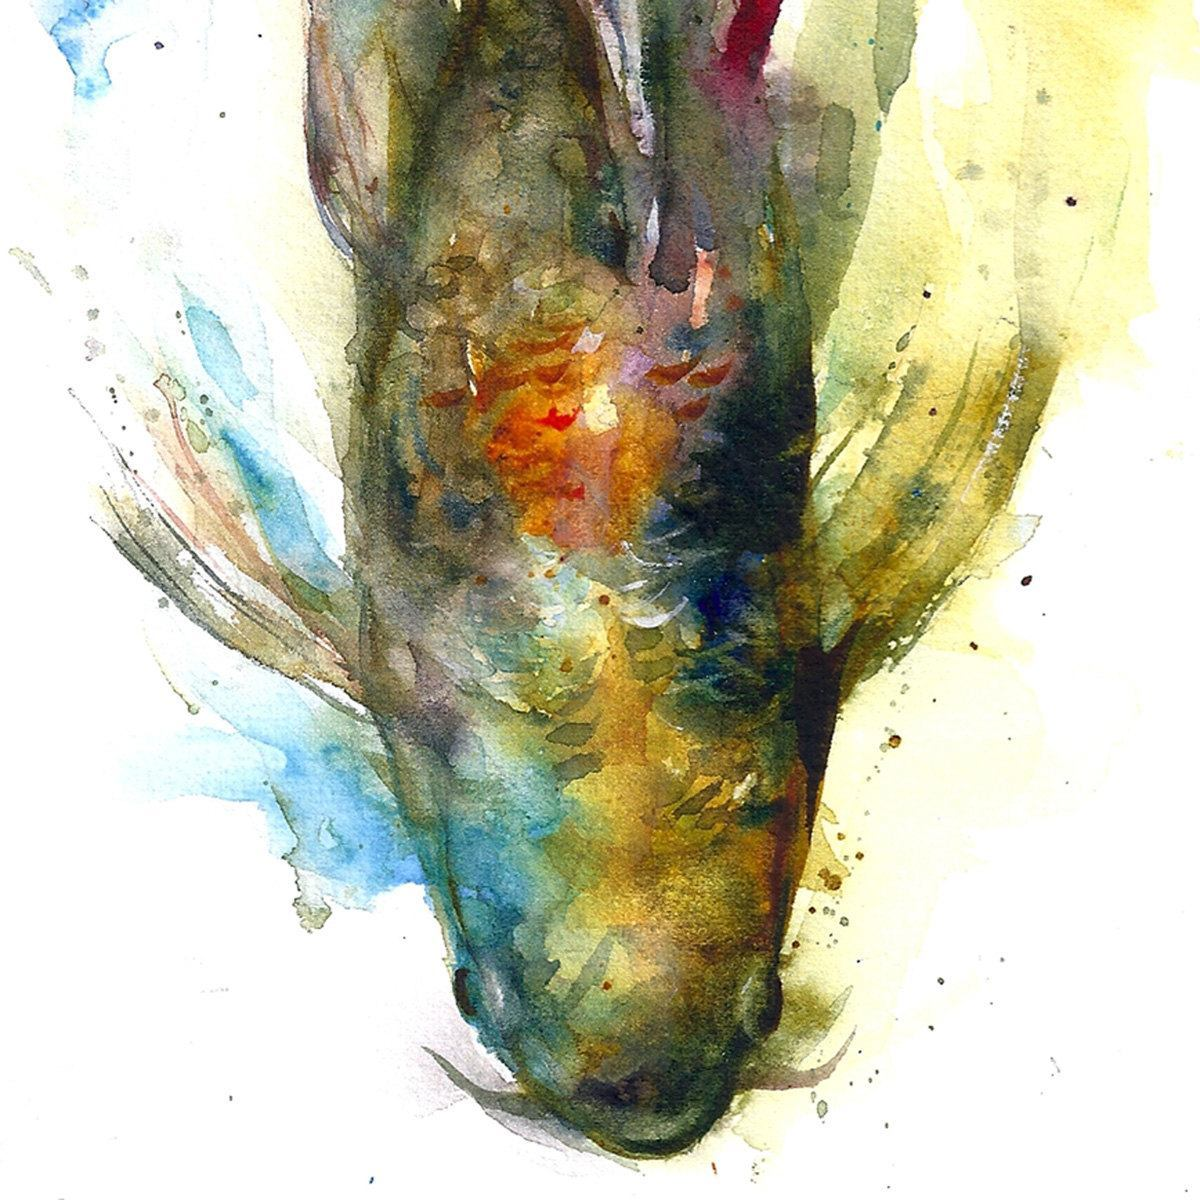 Dean crouser s wild and splashy paintings art for Watercolor fish painting